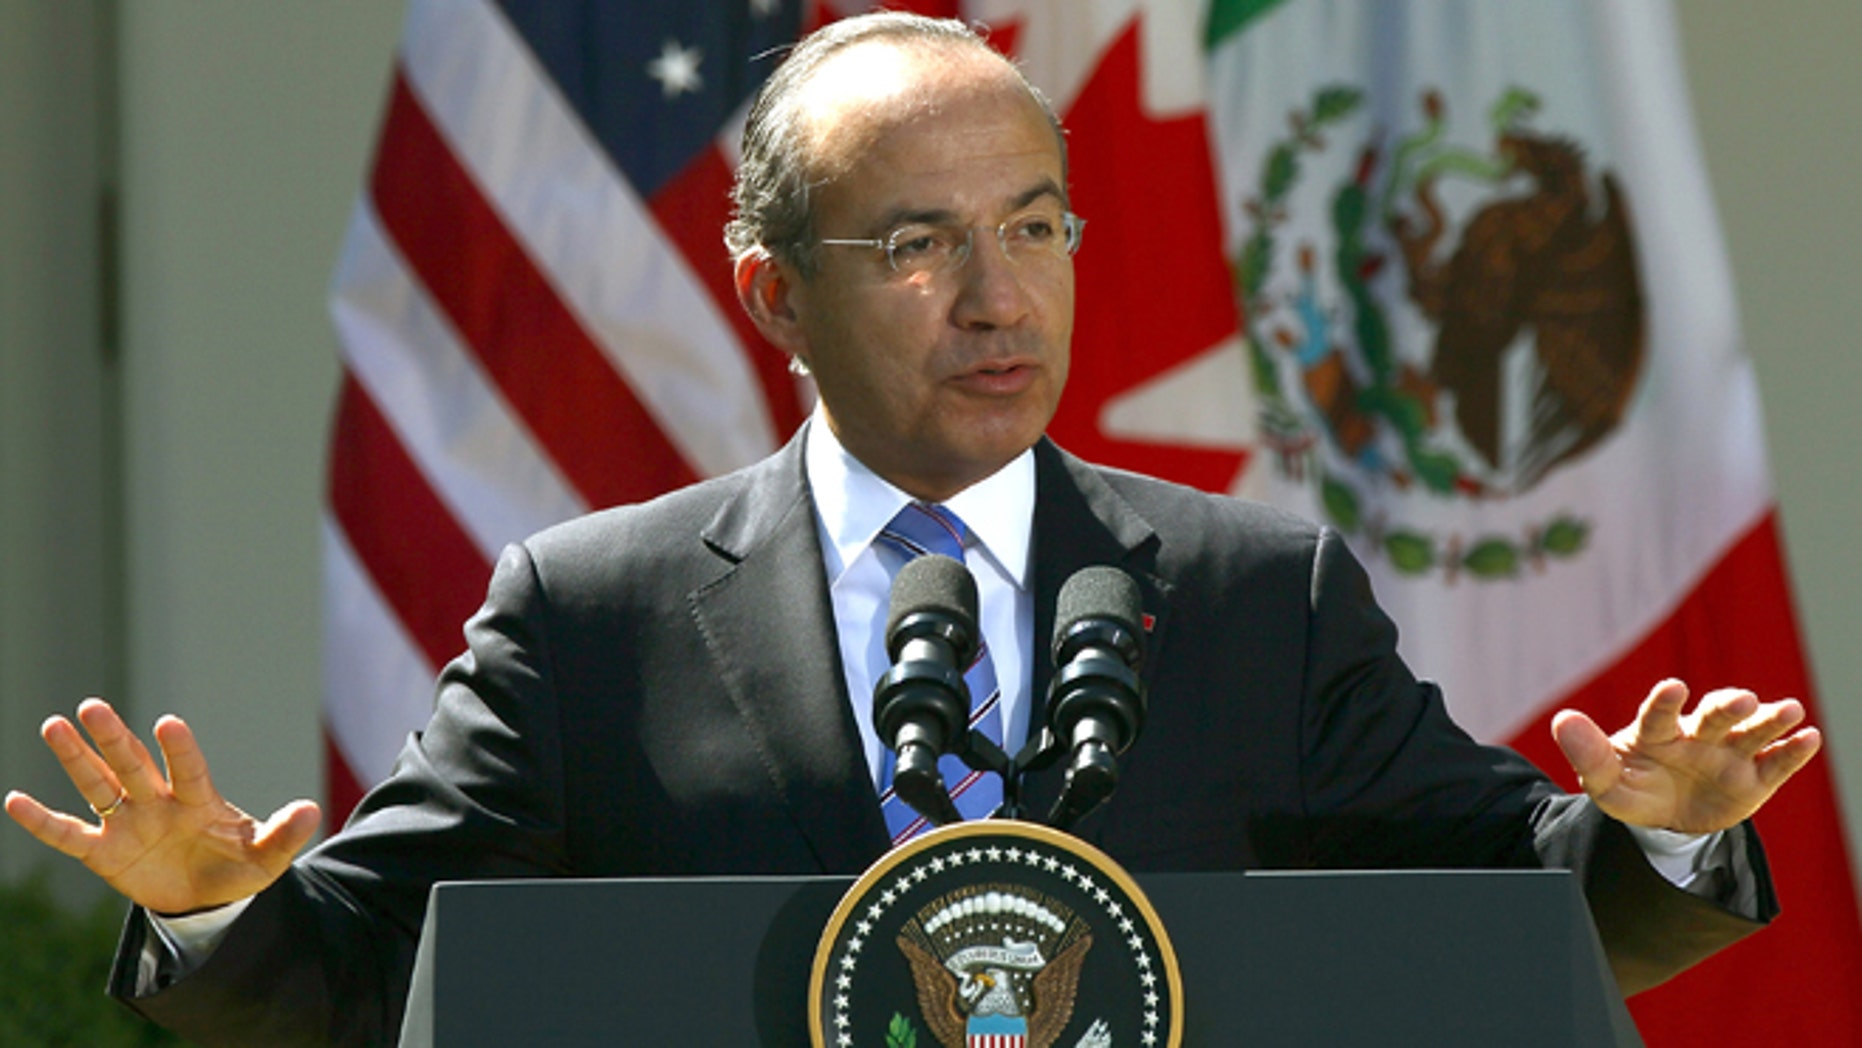 WASHINGTON, DC - APRIL 02:  Mexican President Felipe Calderon answers a question during a joint press conference with U.S. President Barack Obama and Canadian Prime Minister Stephen Harper in the Rose Garden of the White House April 2, 2012 in Washington, DC. Obama hosted his counterparts from Canada and Mexico for the North American Leaders' Summit (NALS) with talks on cooperation among the three countries.  (Photo by Win McNamee/Getty Images)